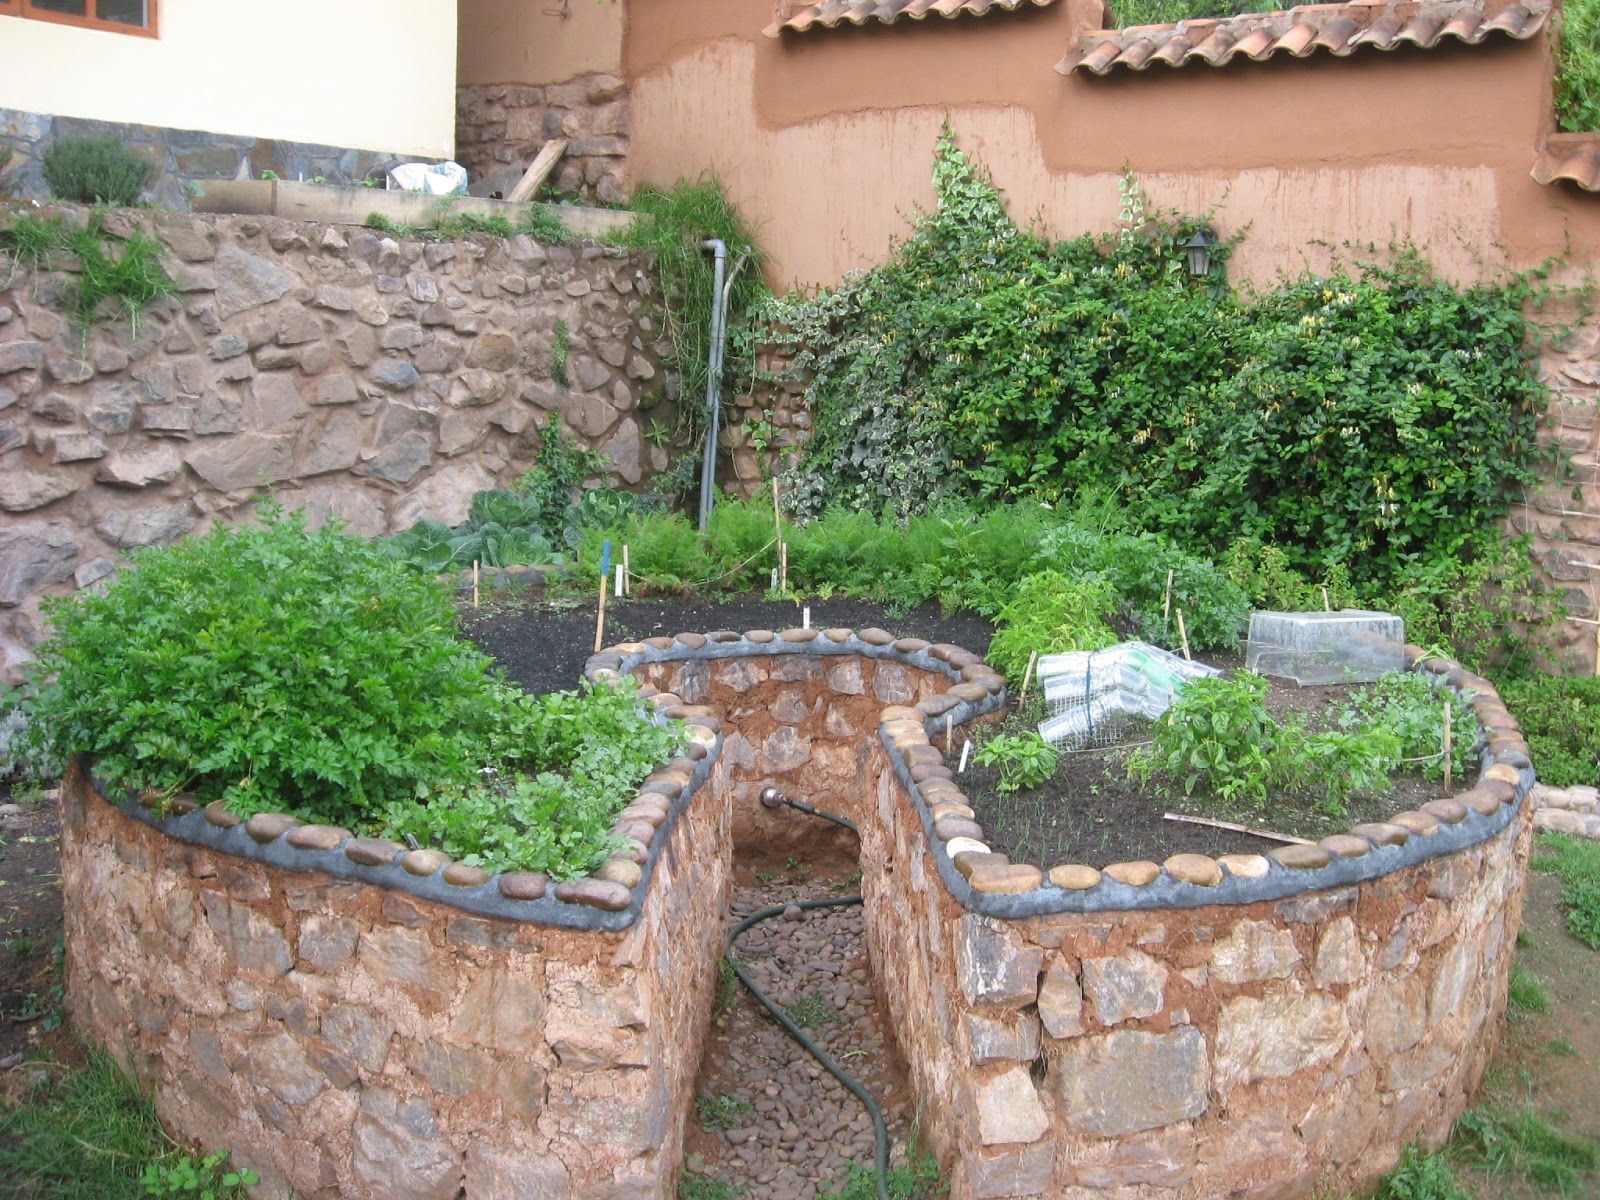 Permaculture Farming Keyhole Raised Bed Gardens Are Great